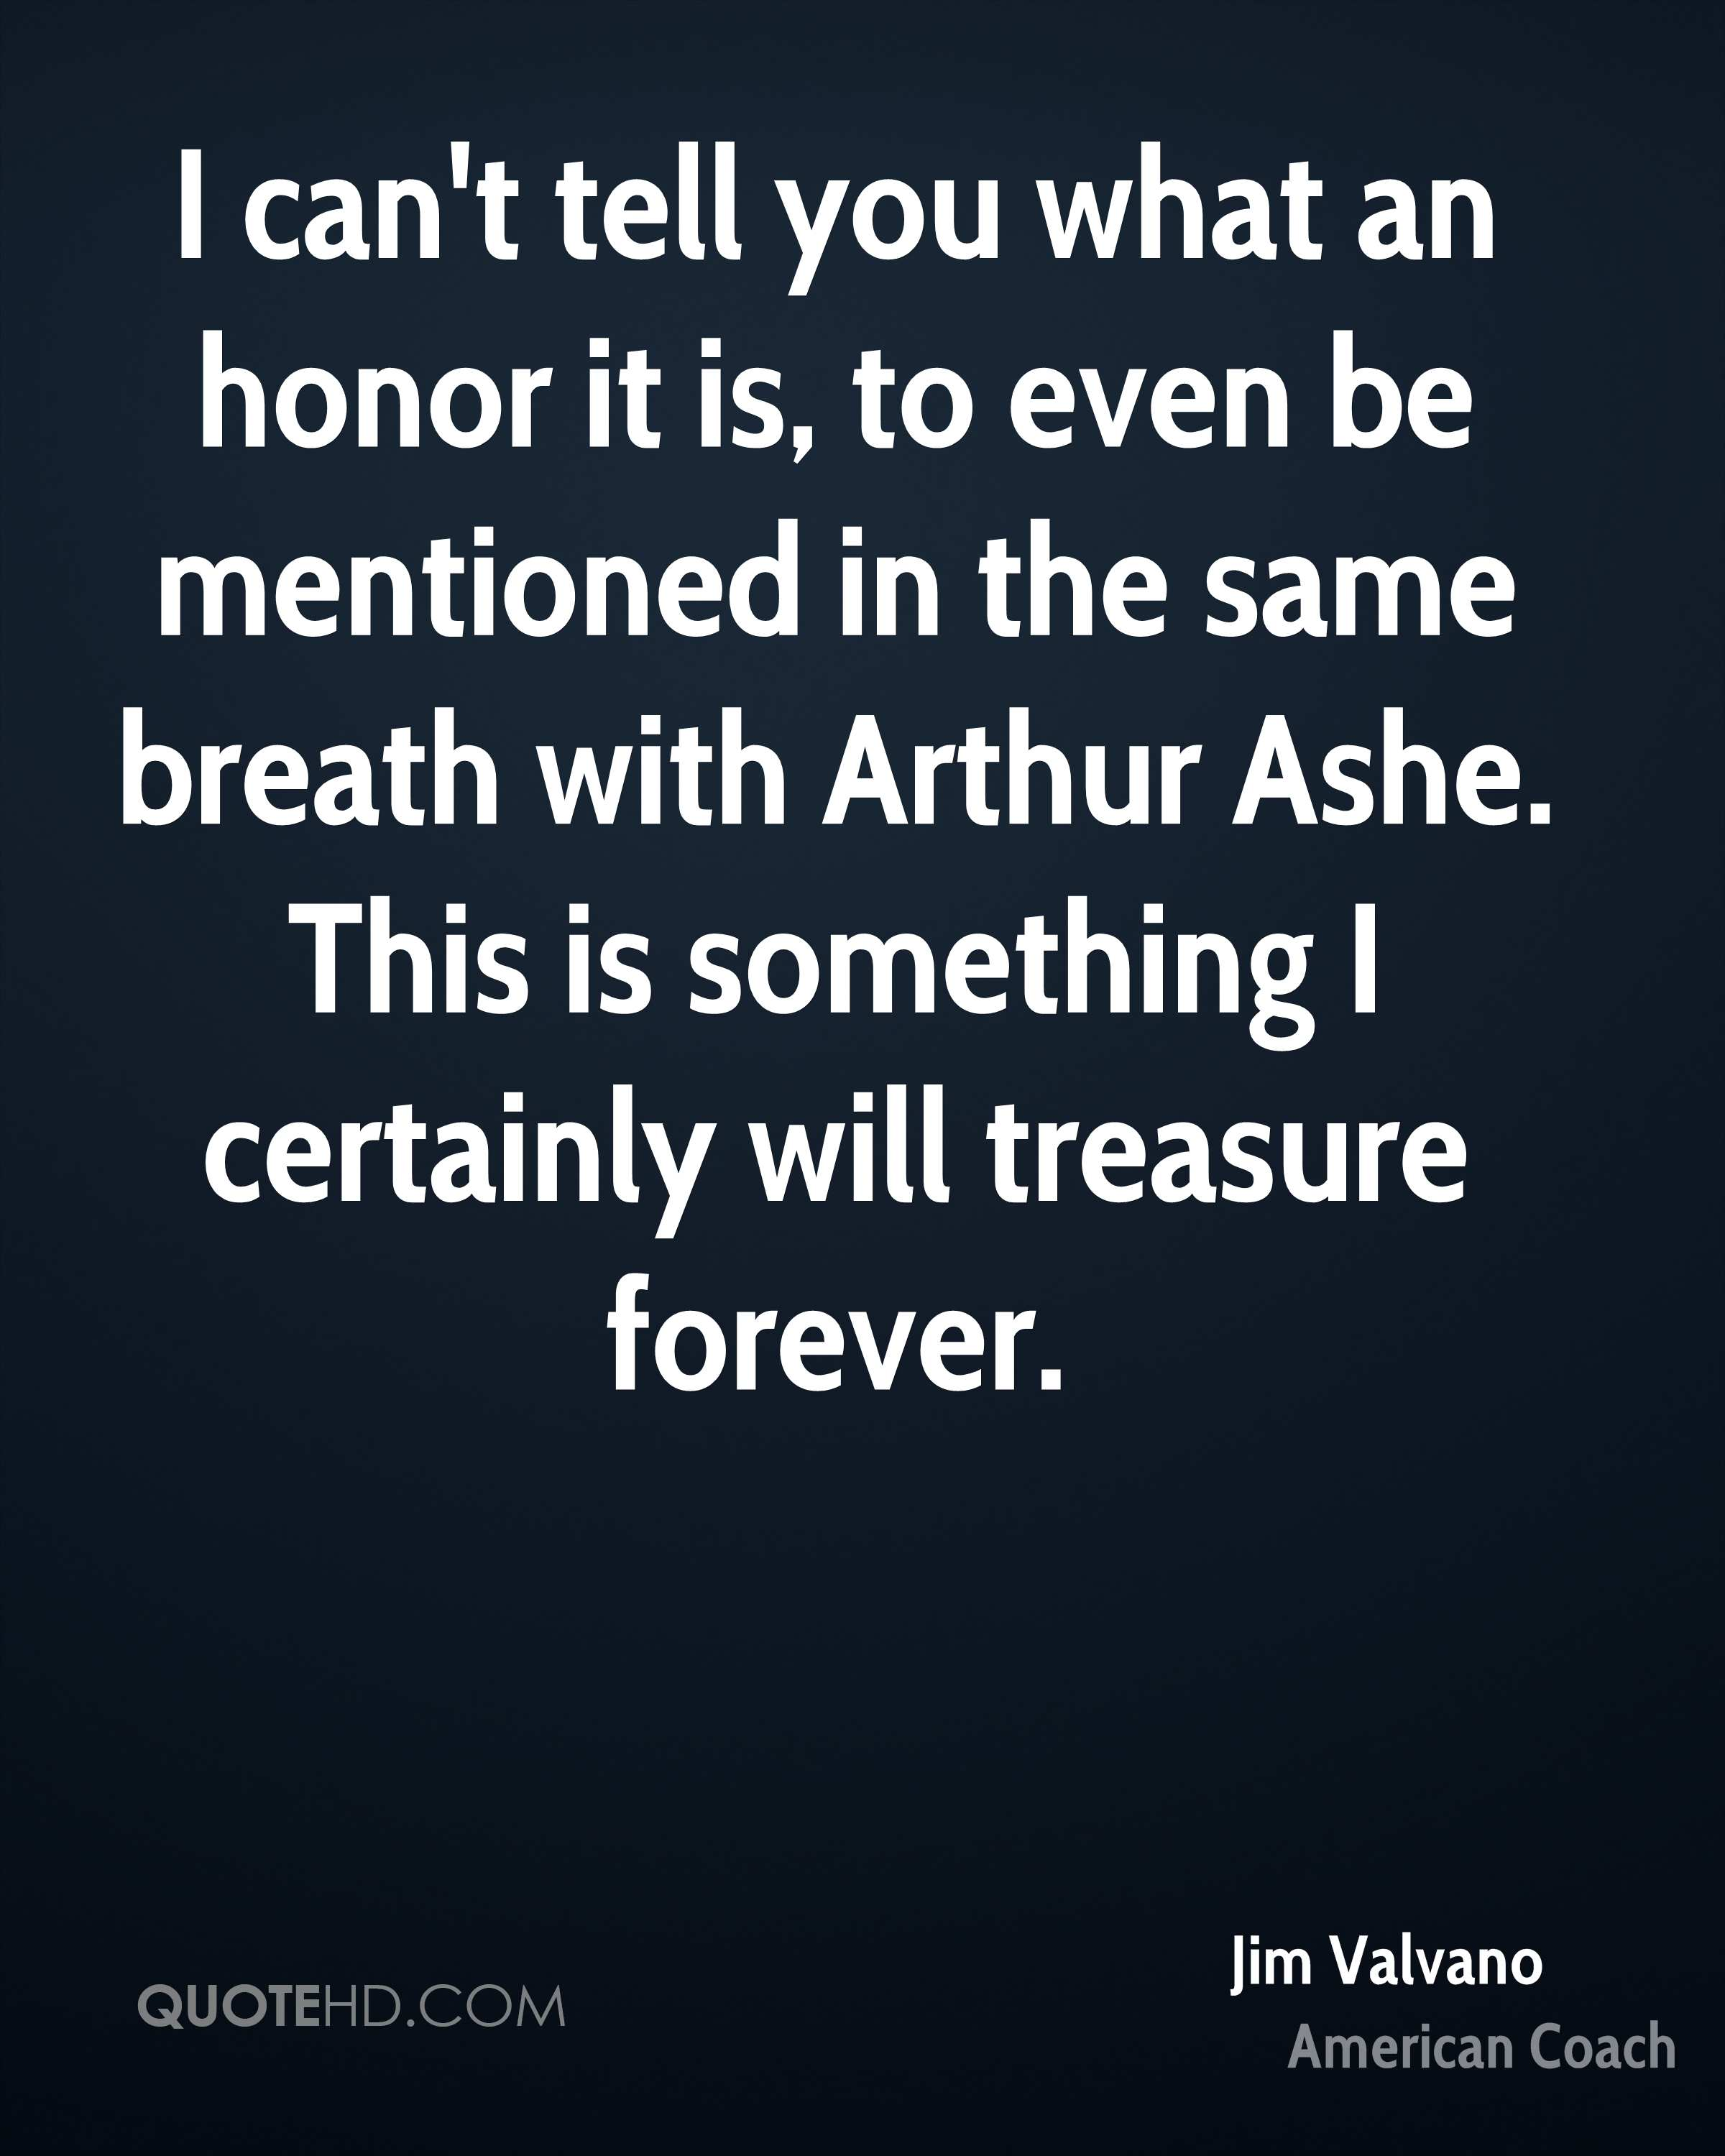 I can't tell you what an honor it is, to even be mentioned in the same breath with Arthur Ashe. This is something I certainly will treasure forever.